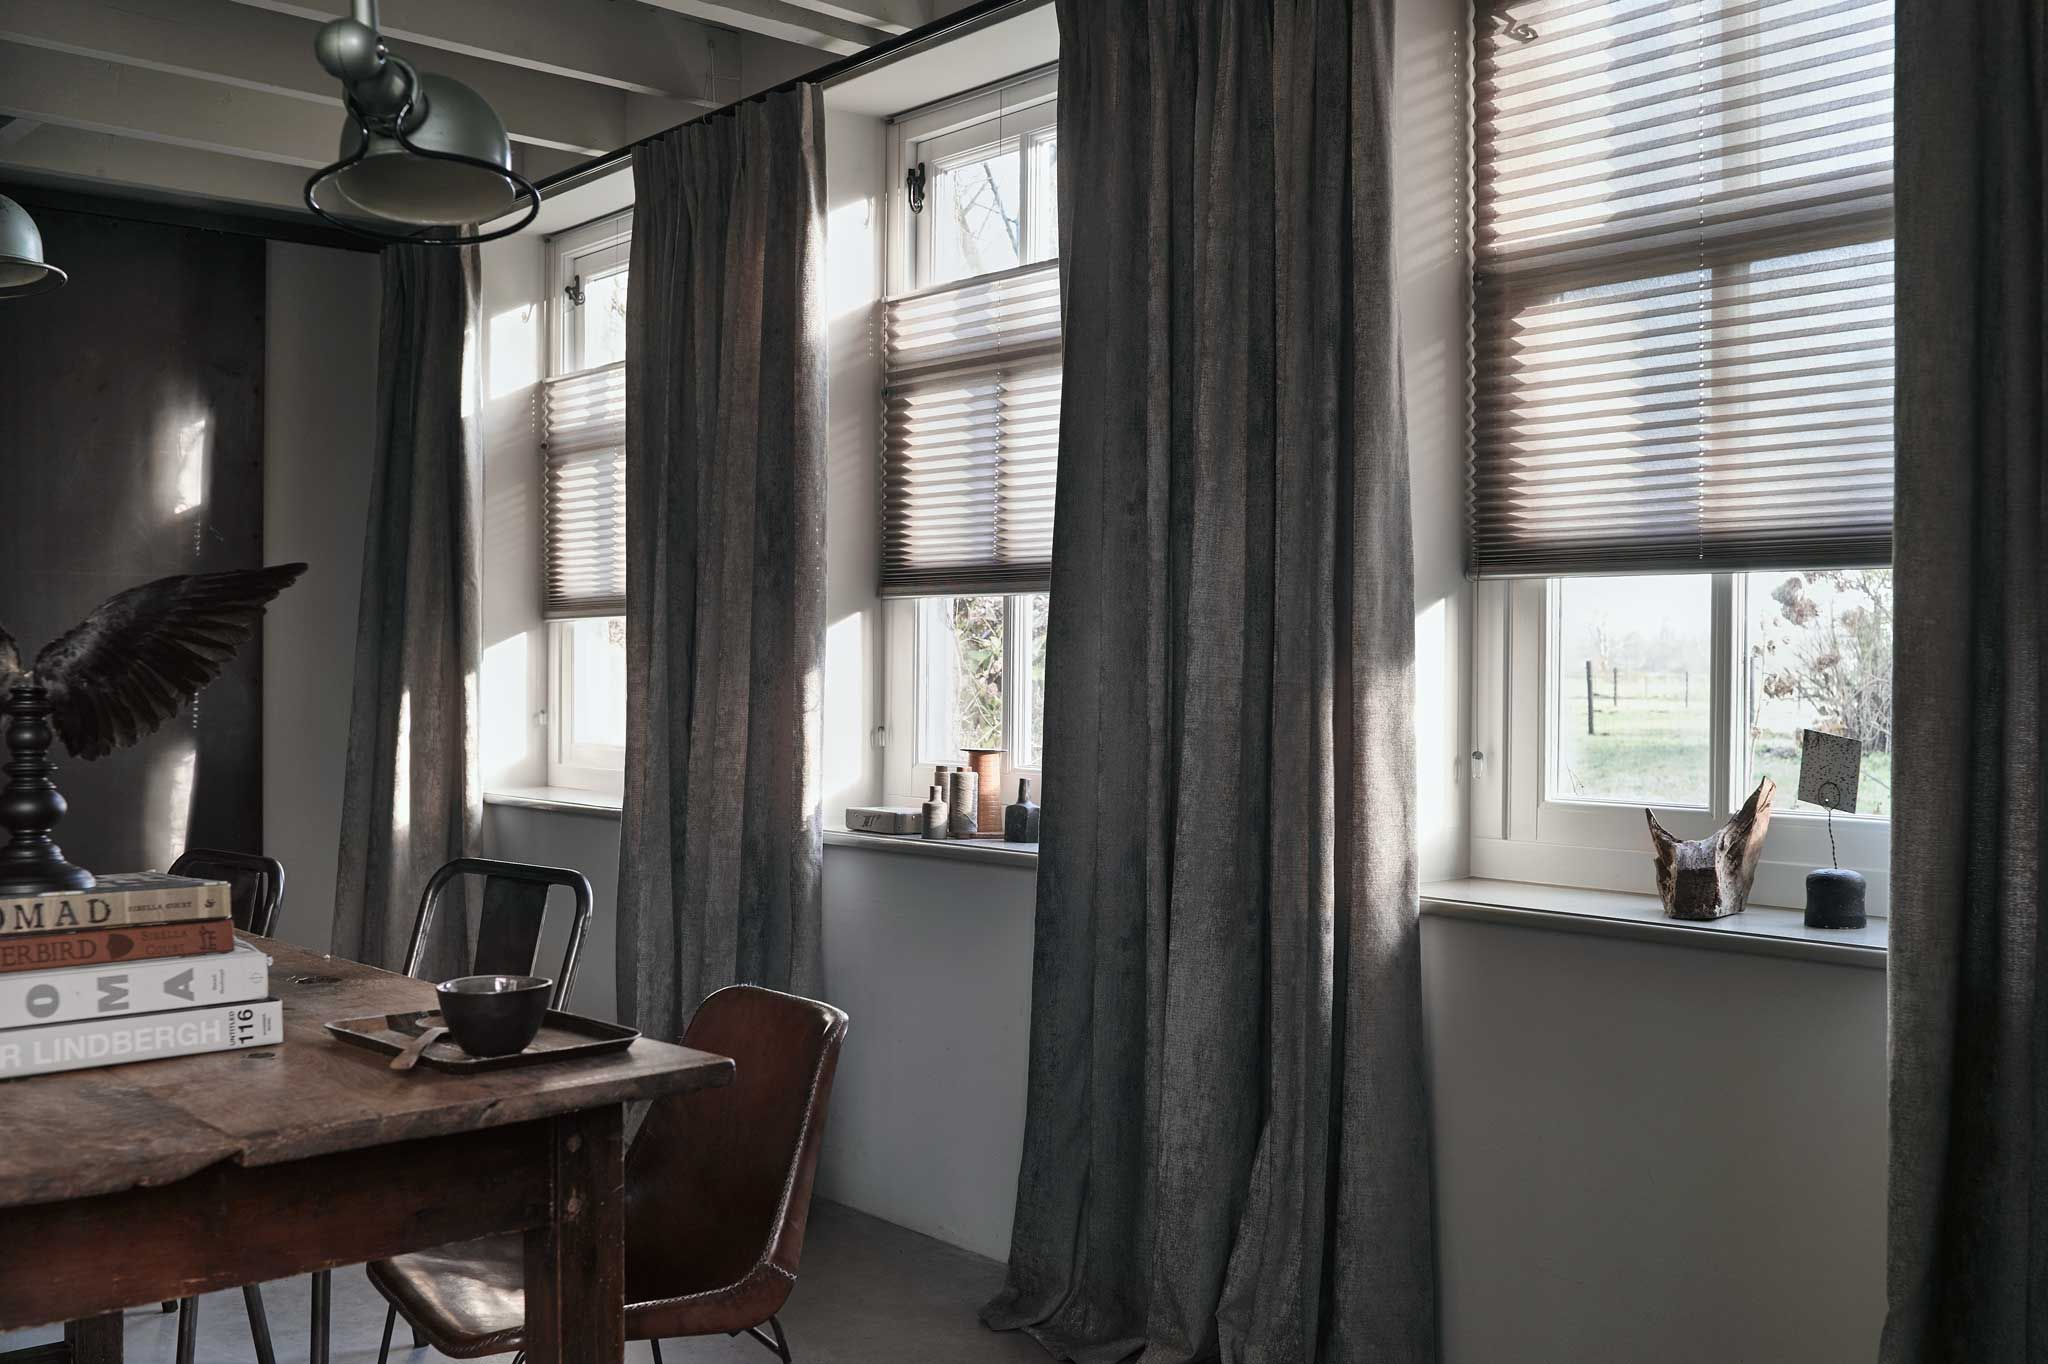 gordijnen en raamdecoratie voor een industrieel interieur curtains or shades window styles home